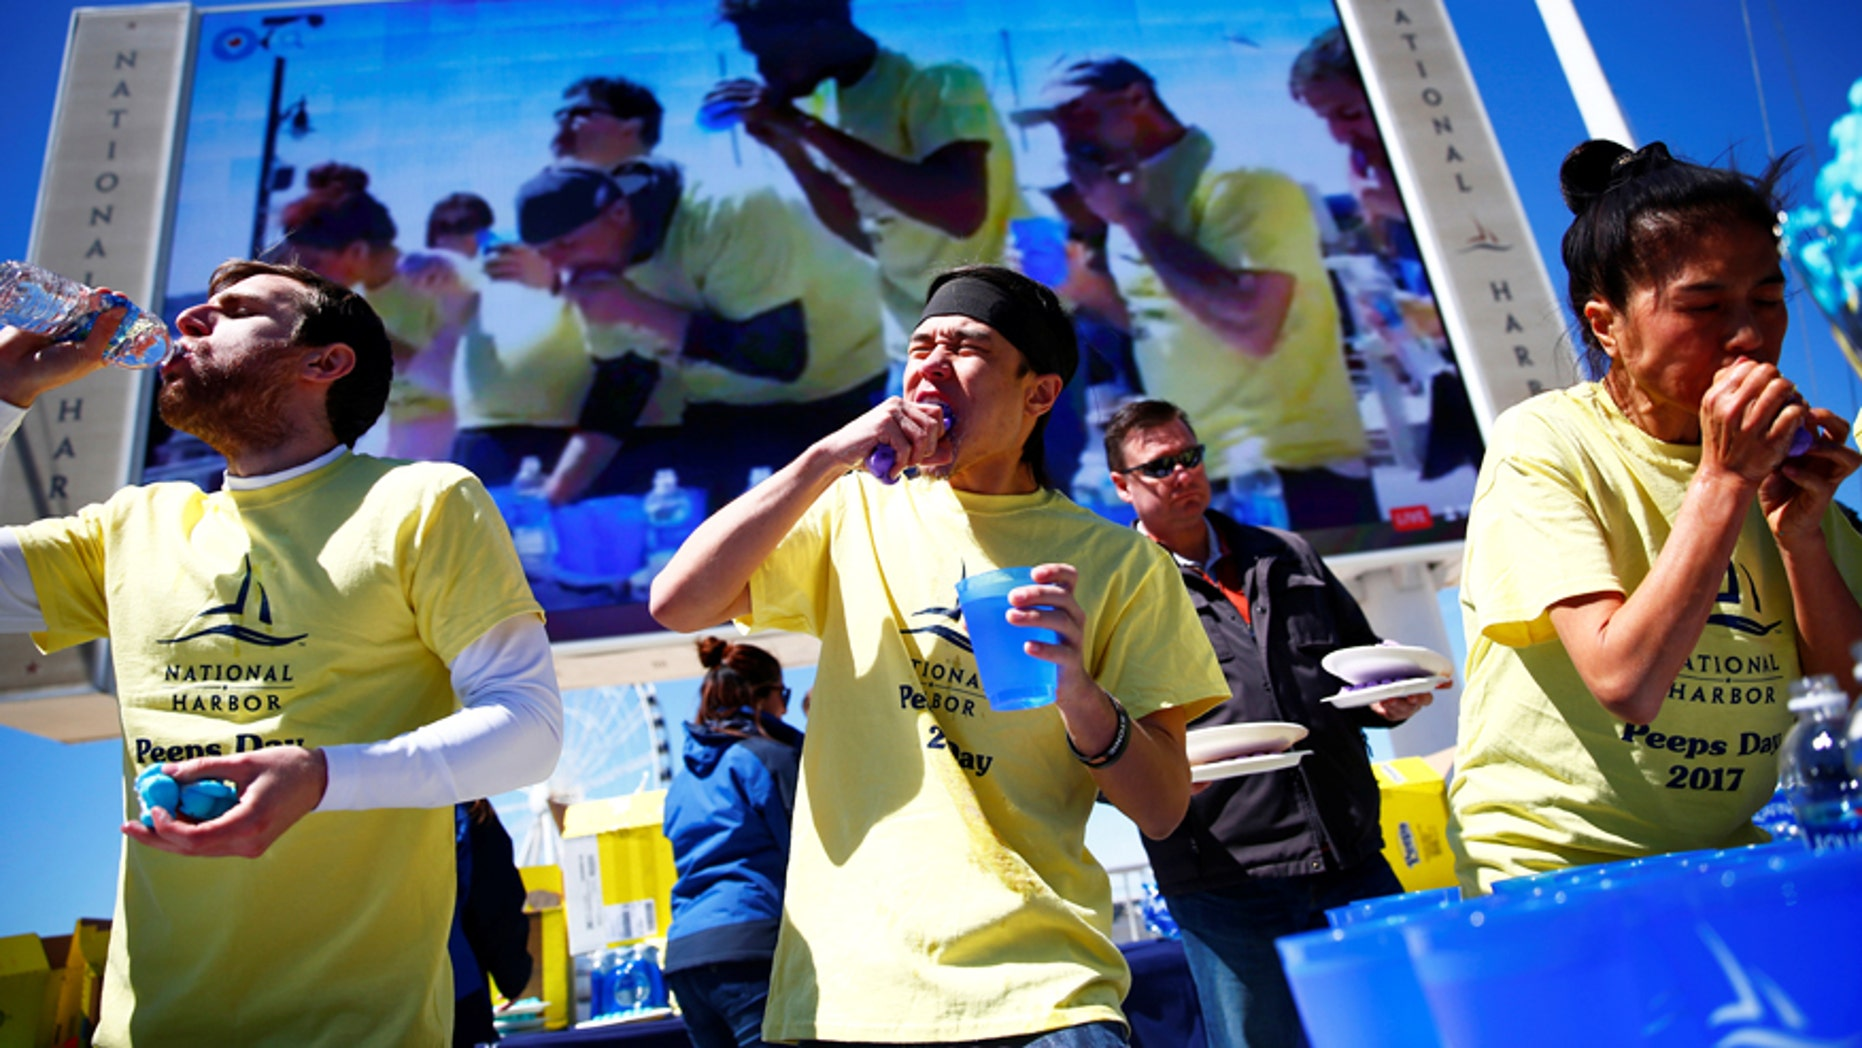 Matt Stonie is flanked by other competitors at the National Harbor World Peeps Eating Championship in National Harbor, Md.